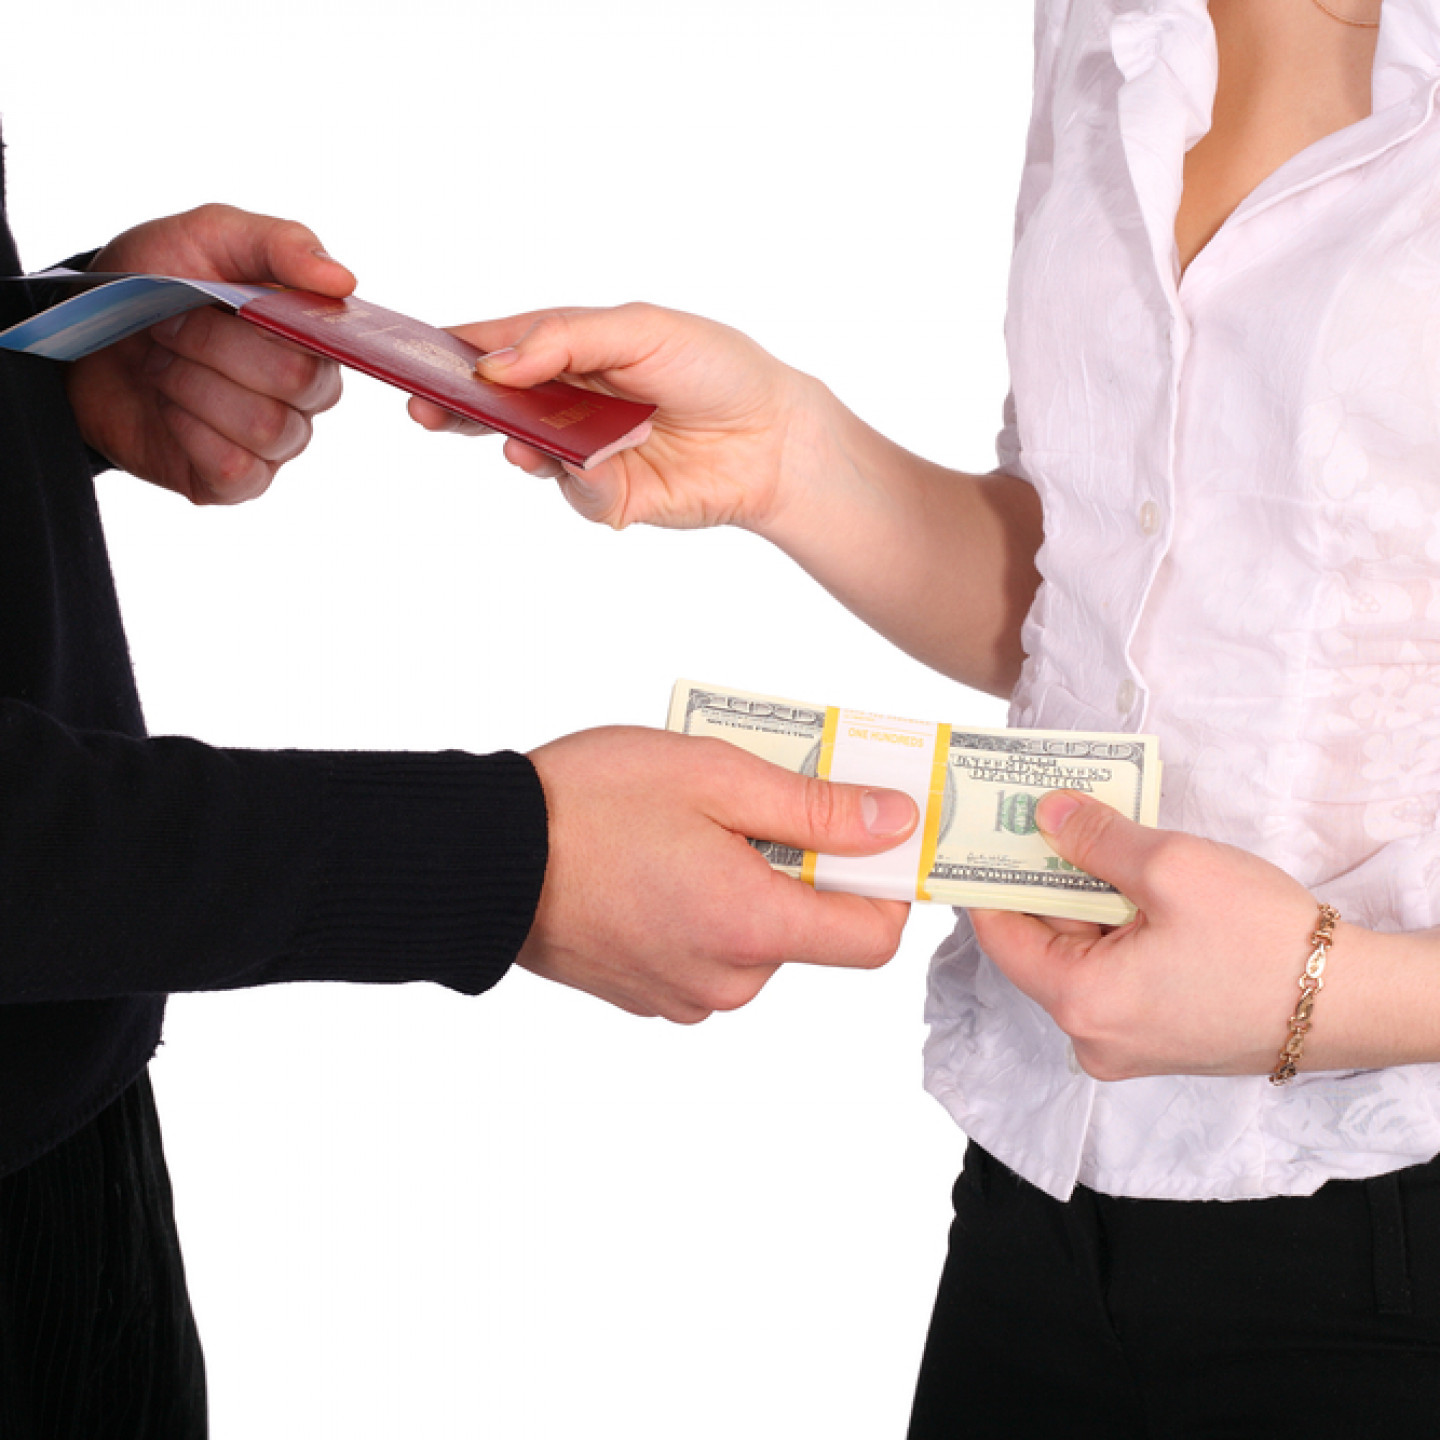 NEED TO SPEAK WITH A SPOUSAL SUPPORT ATTORNEY IN IRVINE, CA?